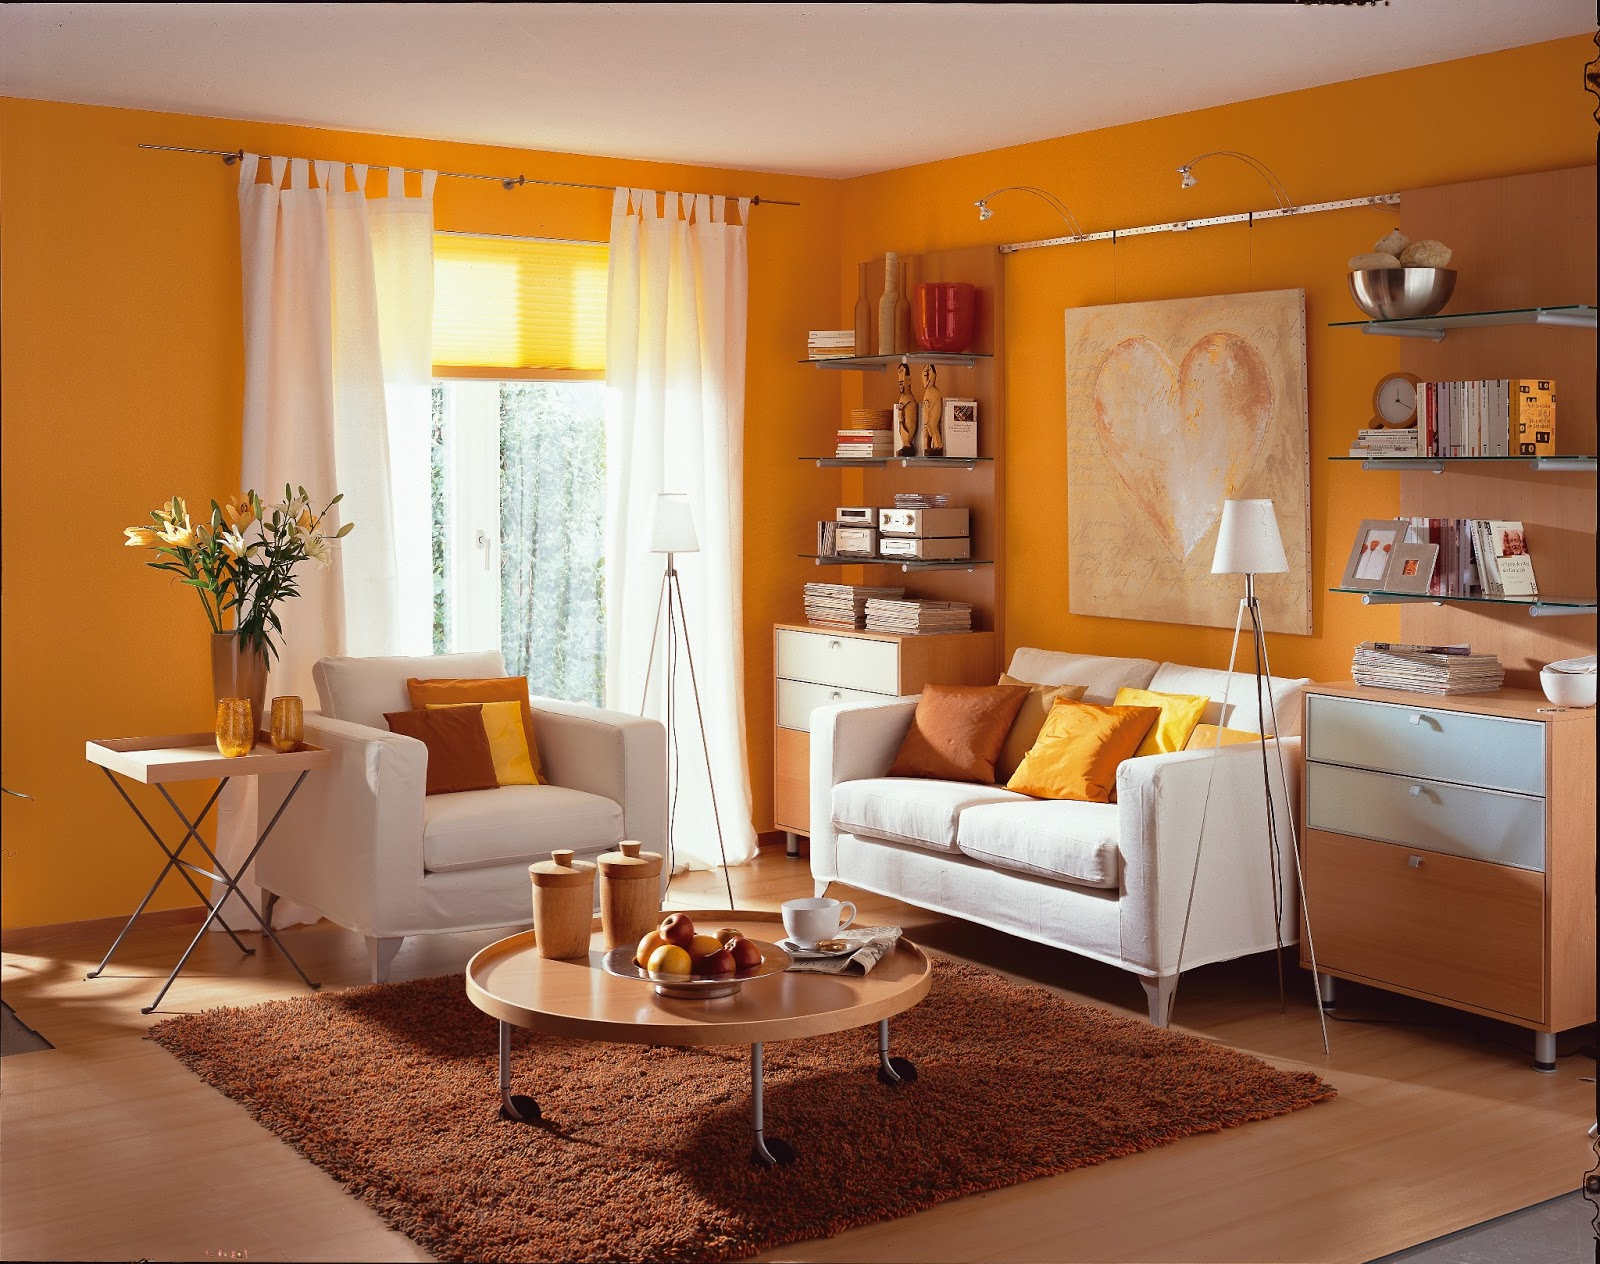 Salas color naranja ideas para decorar dise ar y for Arreglos de sala